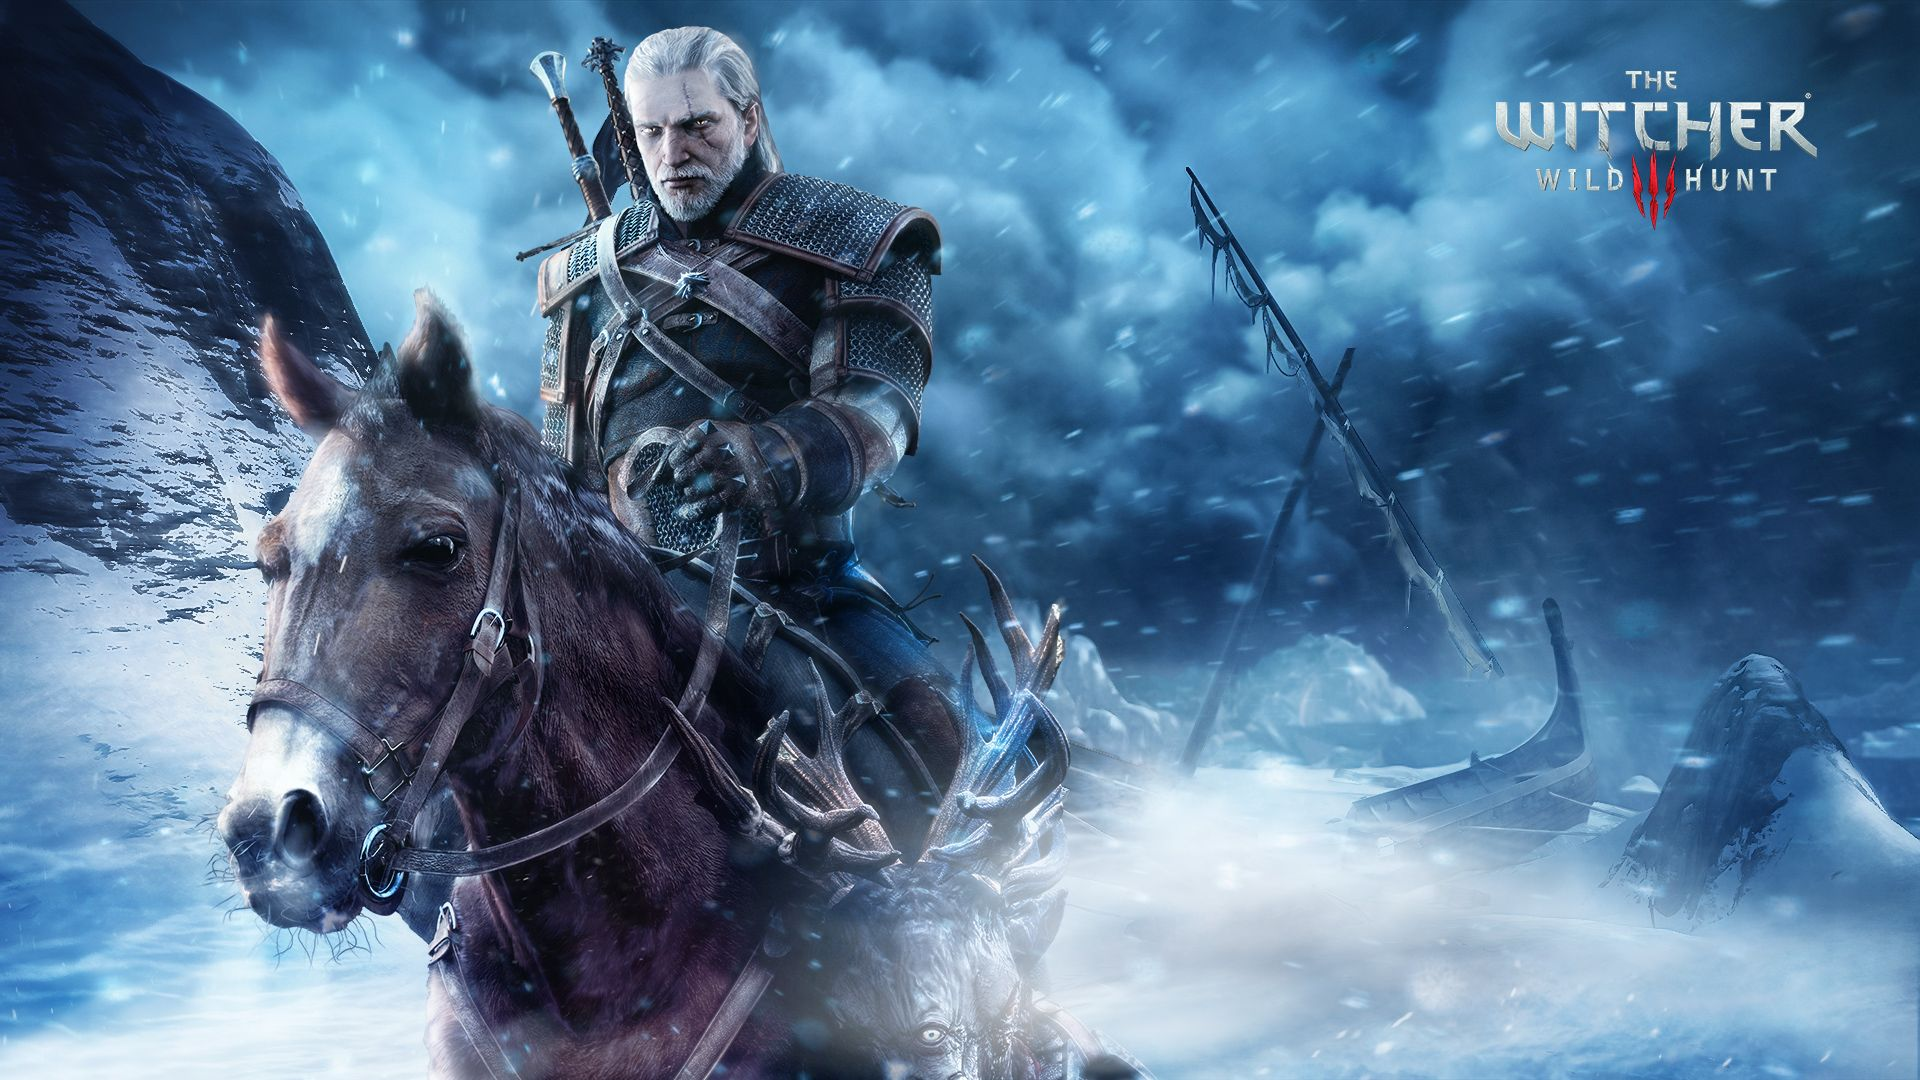 The Witcher 3 Wild Hunt Wallpapers Top Free The Witcher 3 Wild